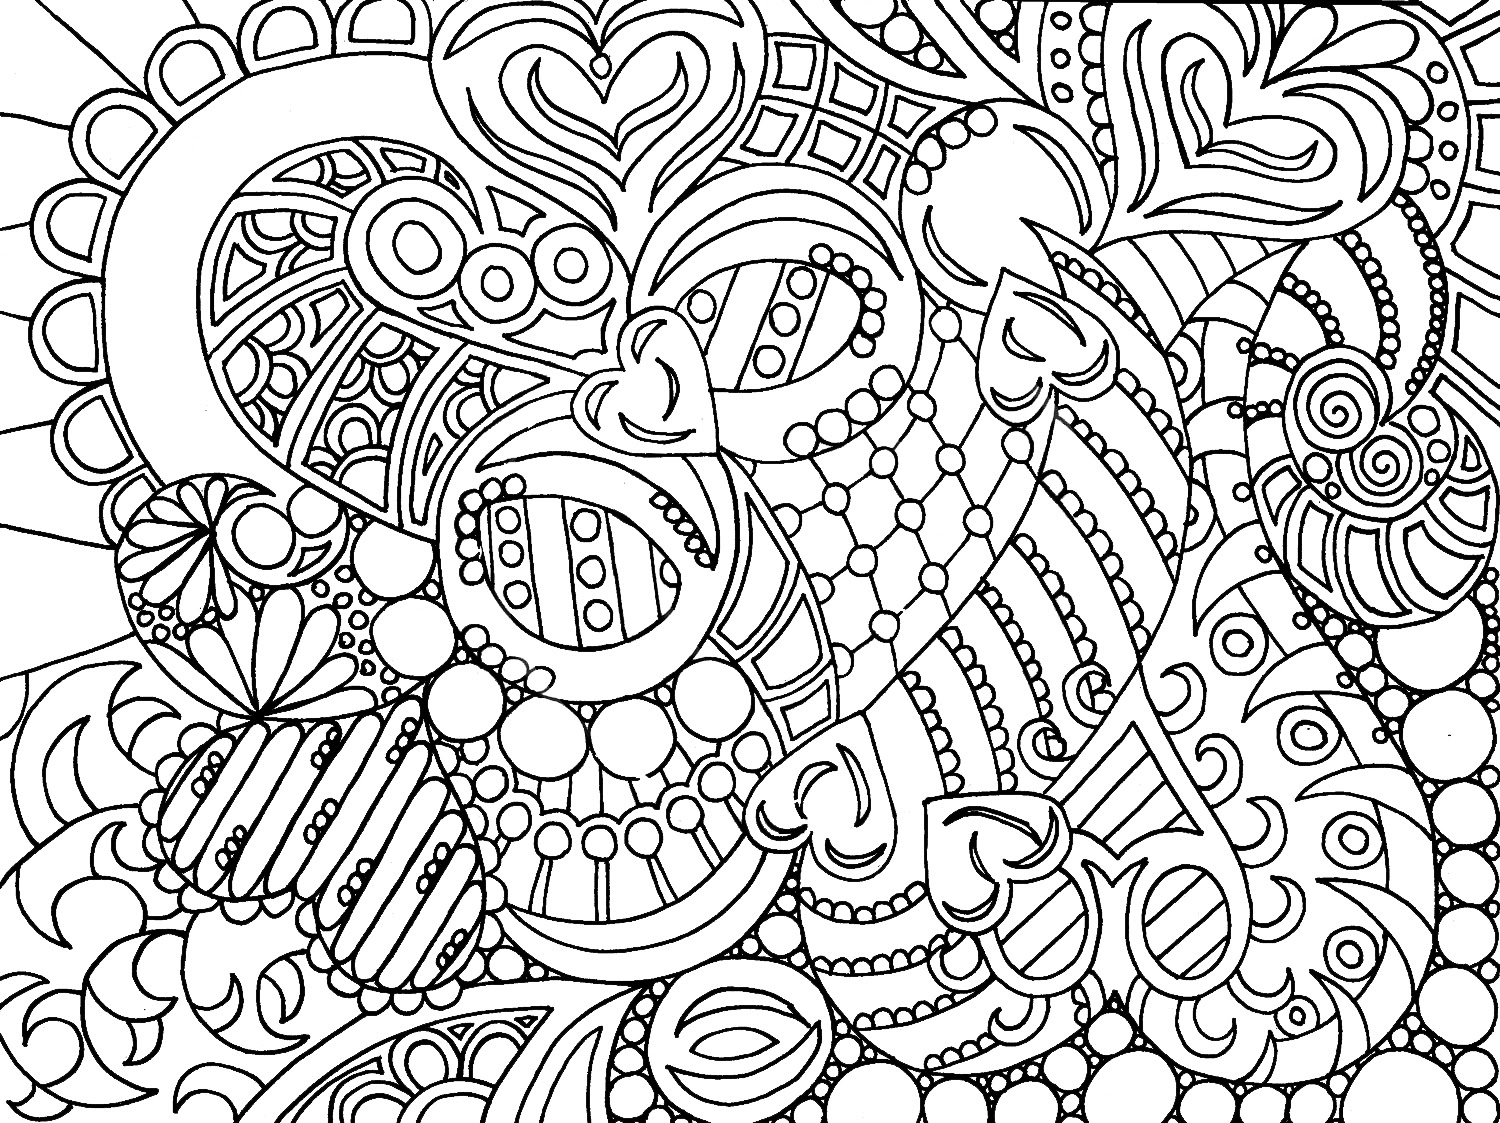 coloring pages of flowers for teenagers difficult PINTEREST